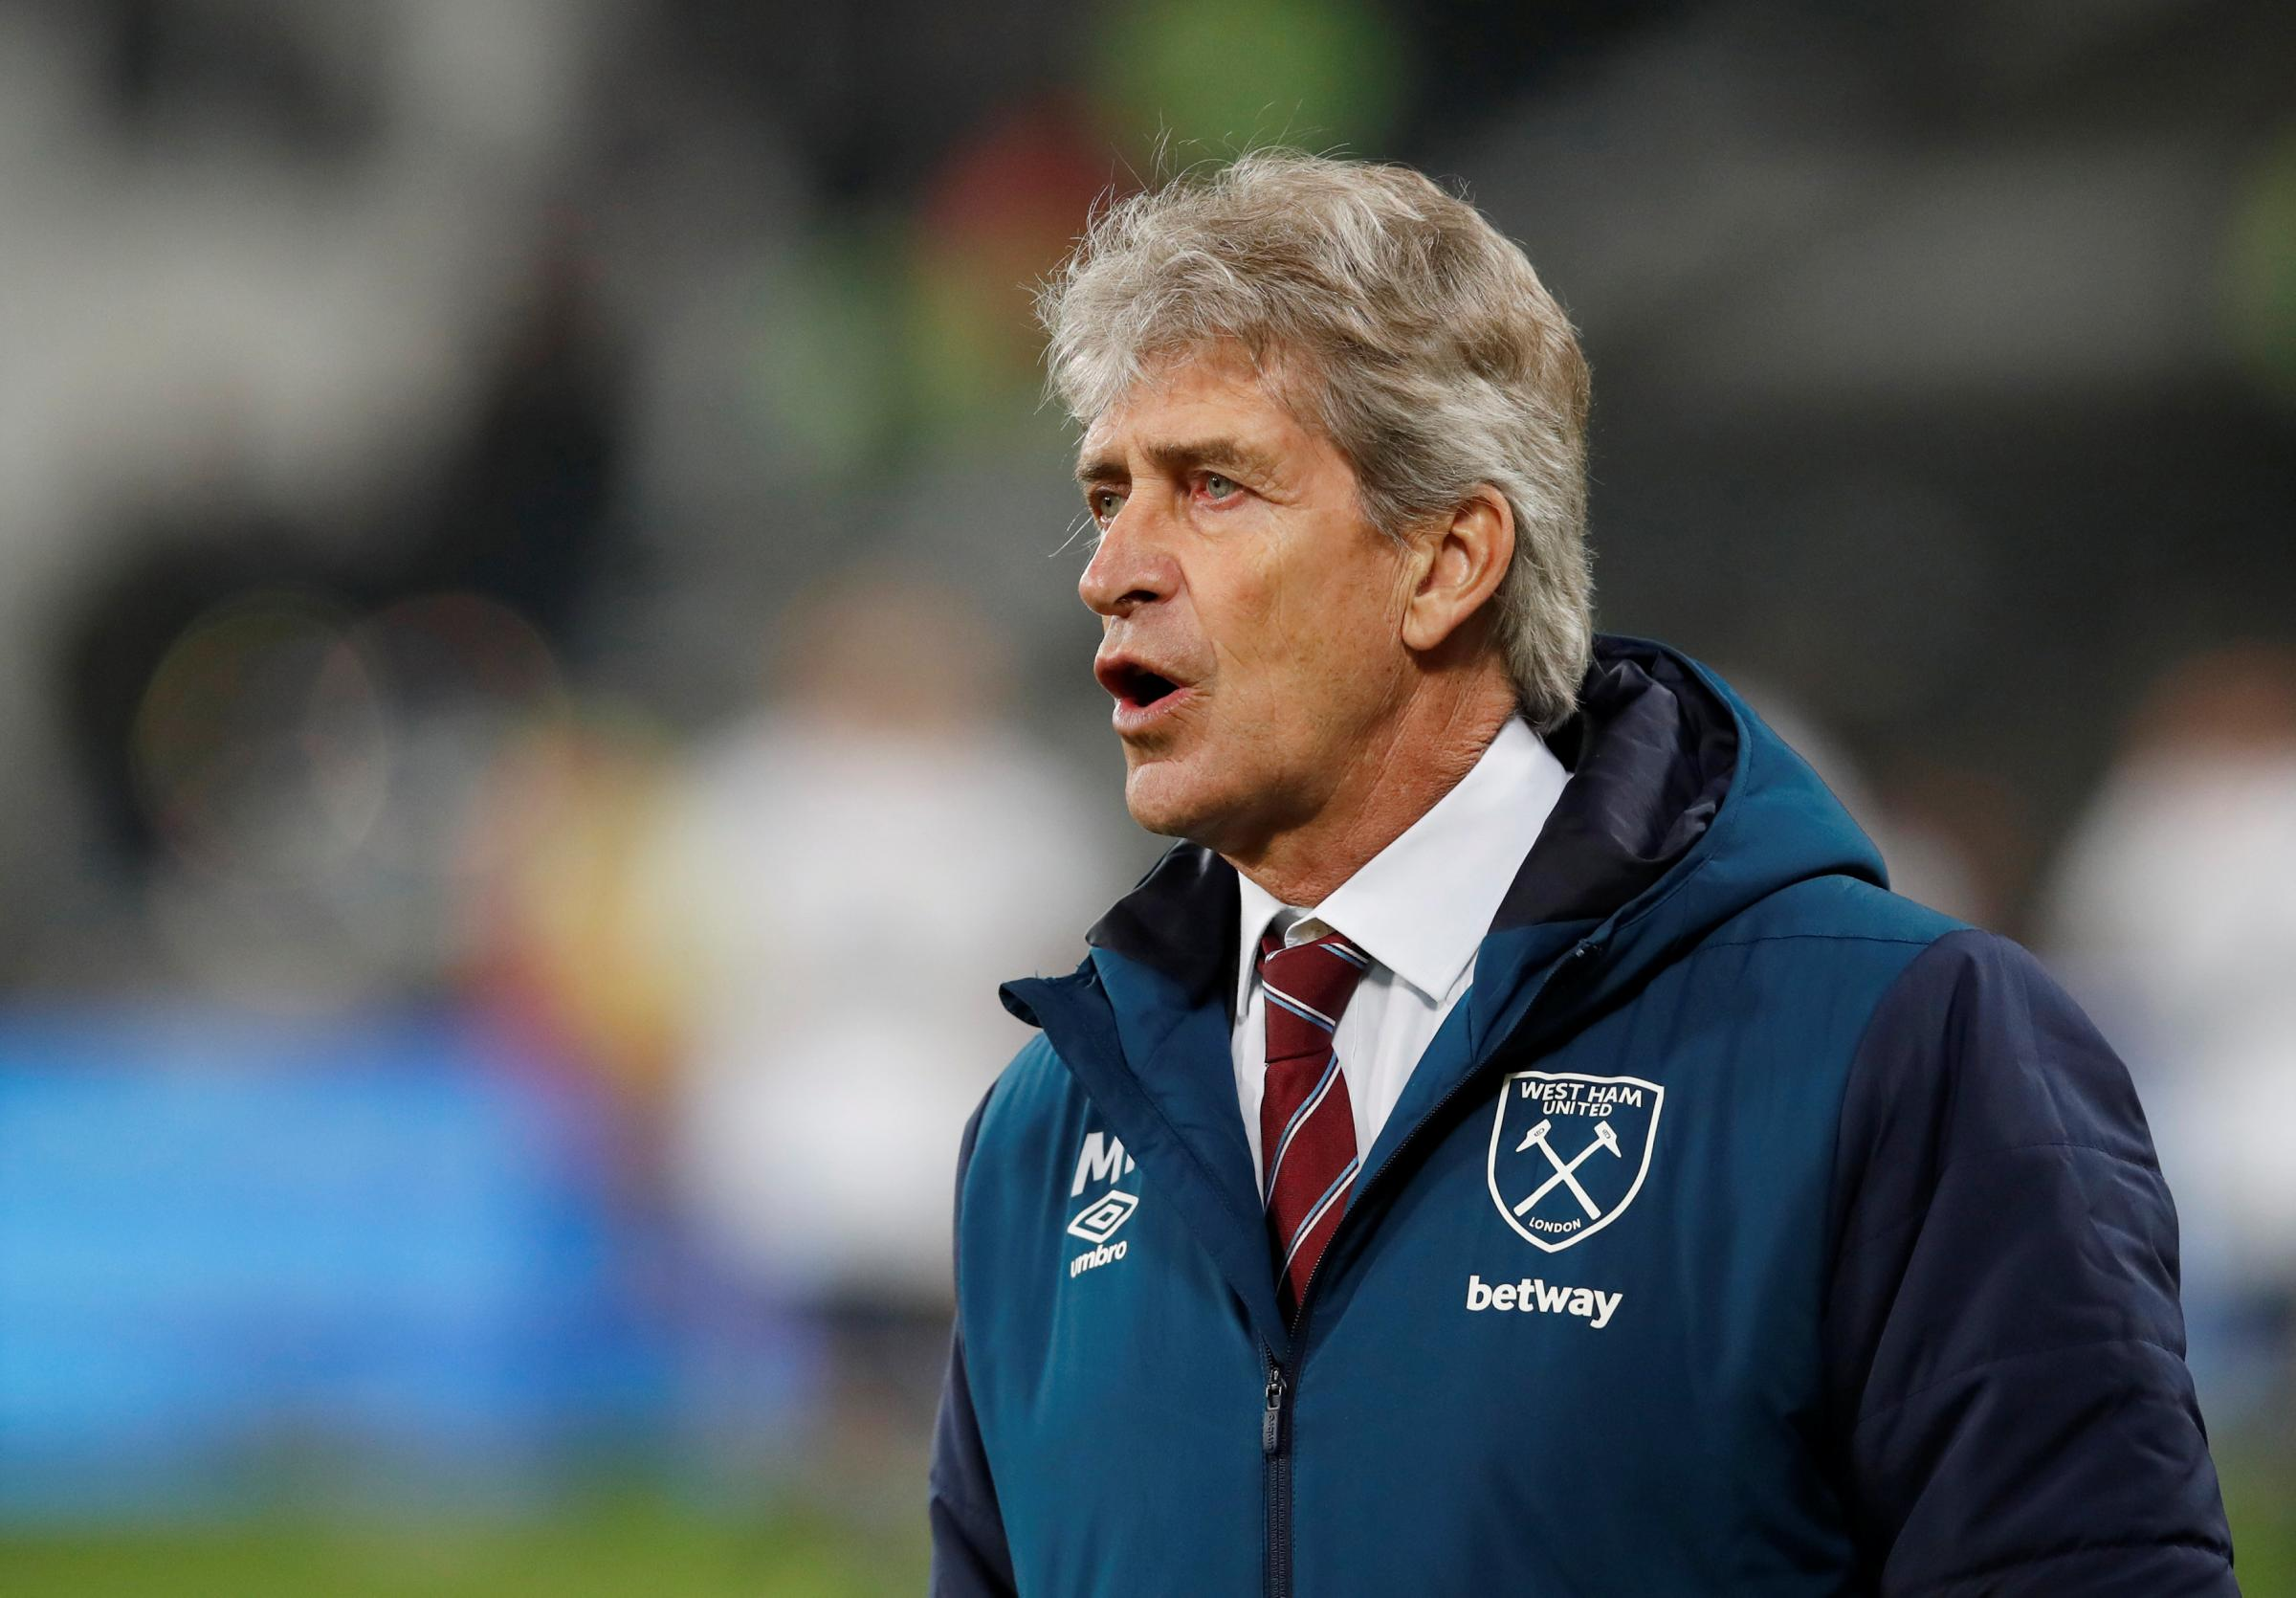 Manuel Pellegrini has never failed to qualify for Europe. Picture: Action Images